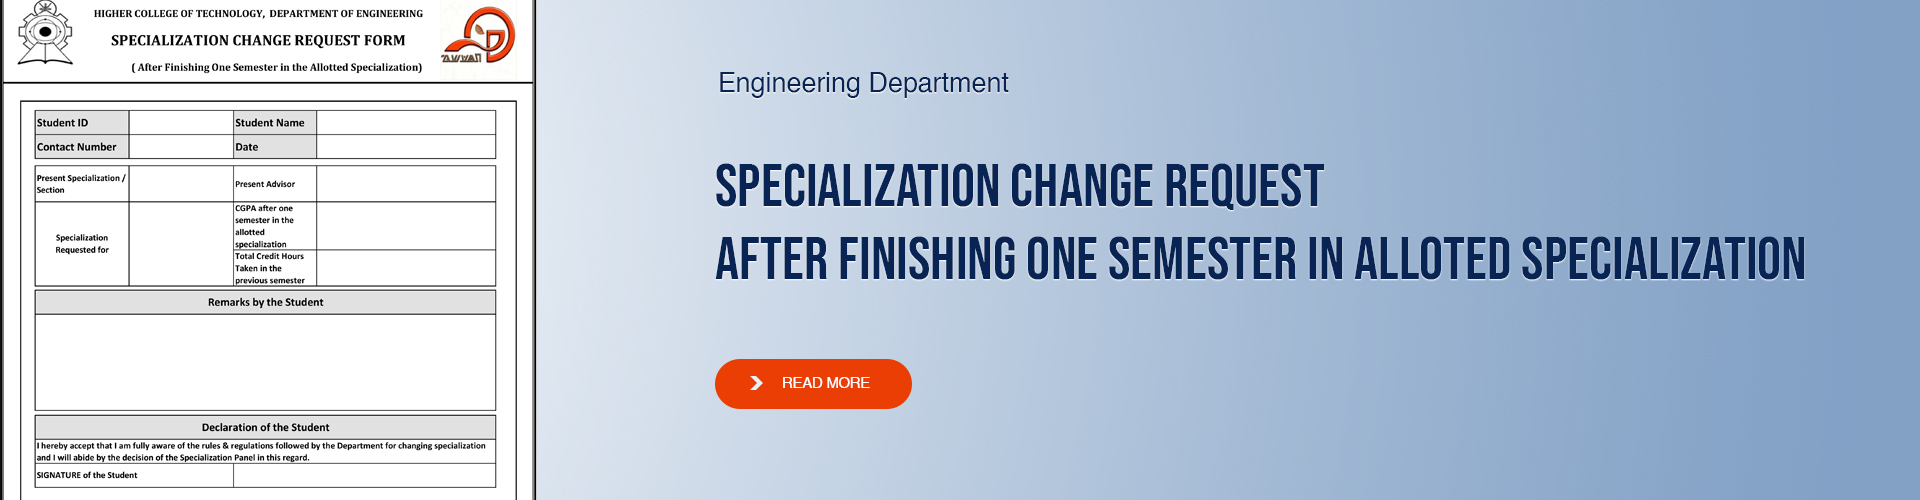 Engineering Department - Specialization Change Request After Finishing One Semester in Alloted Specialization